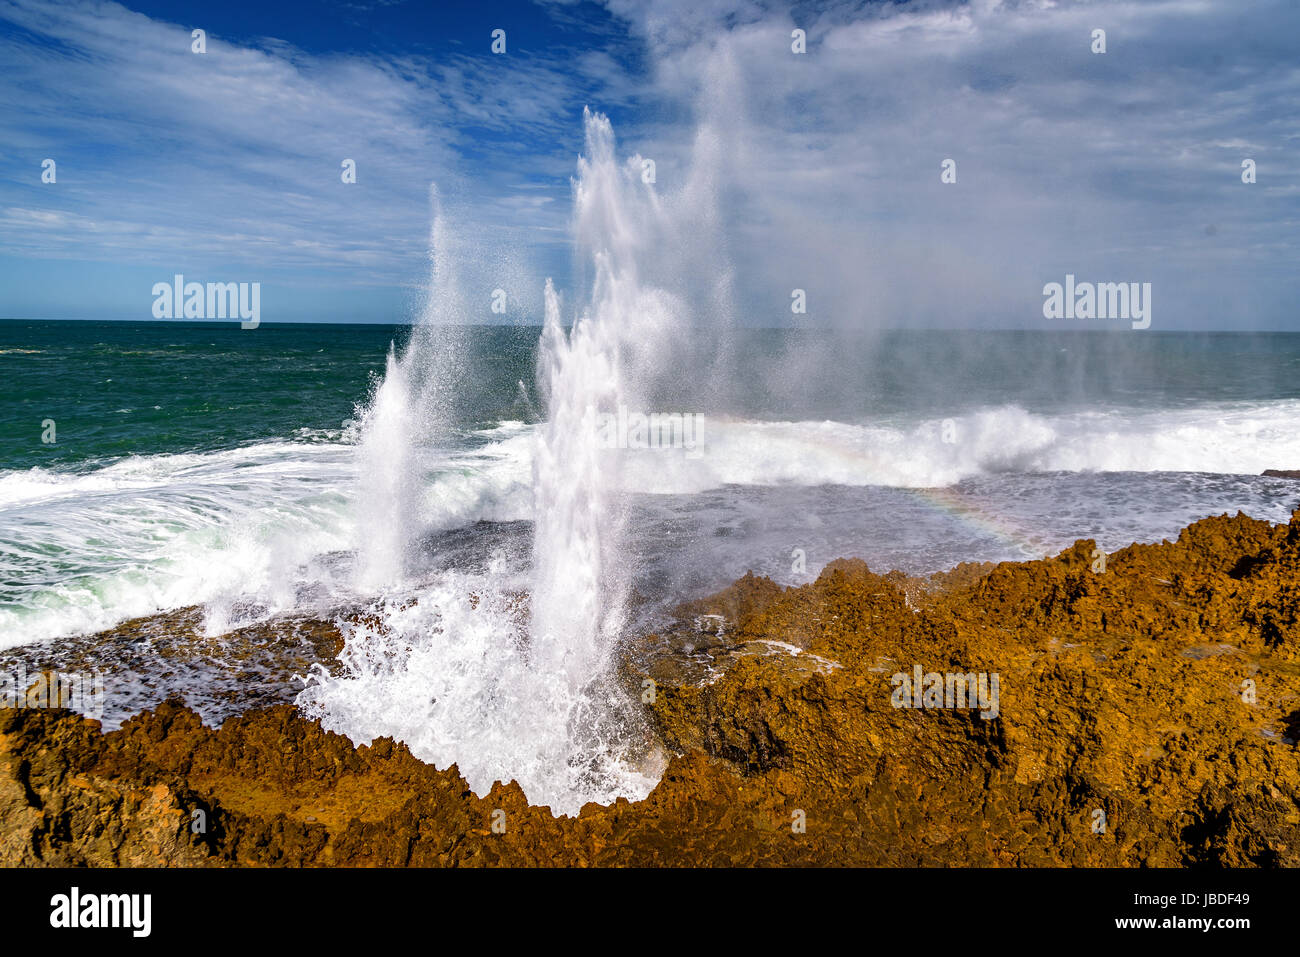 Coup Quobba Australie Occidentale, trous Photo Stock